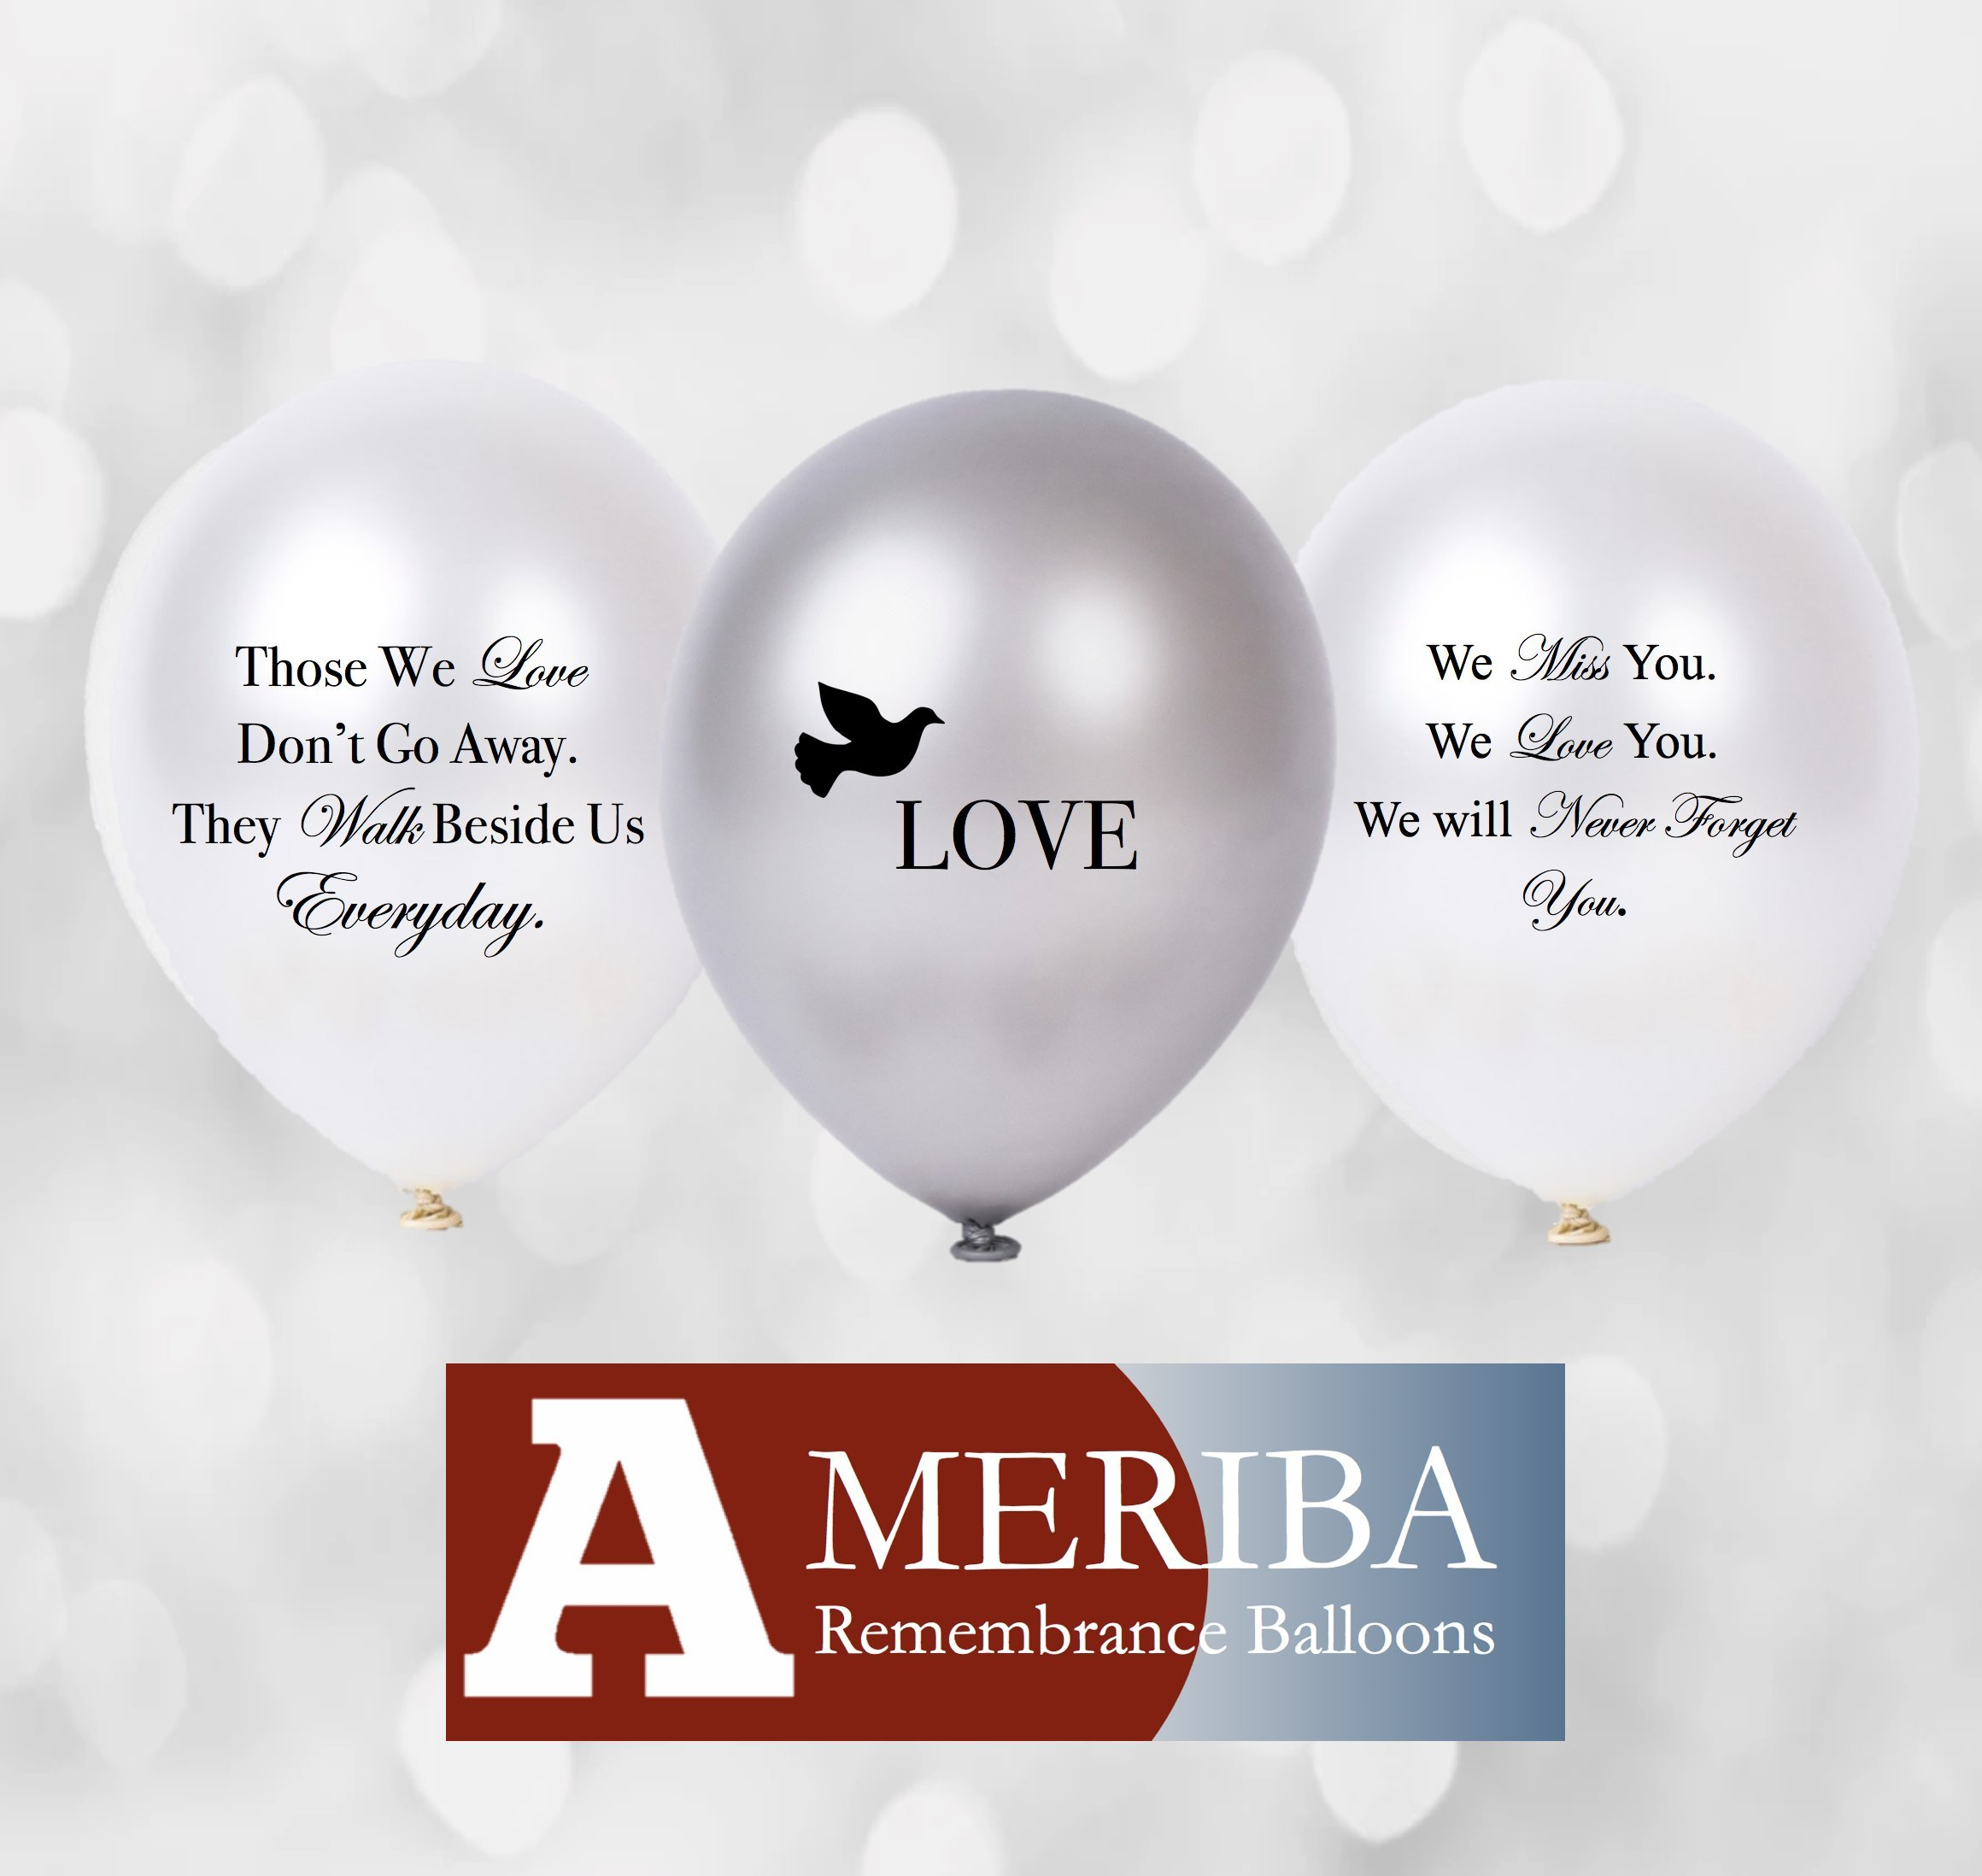 Biodegradable Remembrance Balloons: 30pc White & Silver Personalizable Funeral Balloons for Balloon Releases & Sympathy Gifts | Created/Sold by AMERIBA, a USA Company (Variety Pack, Black Writing) by AMERIBA